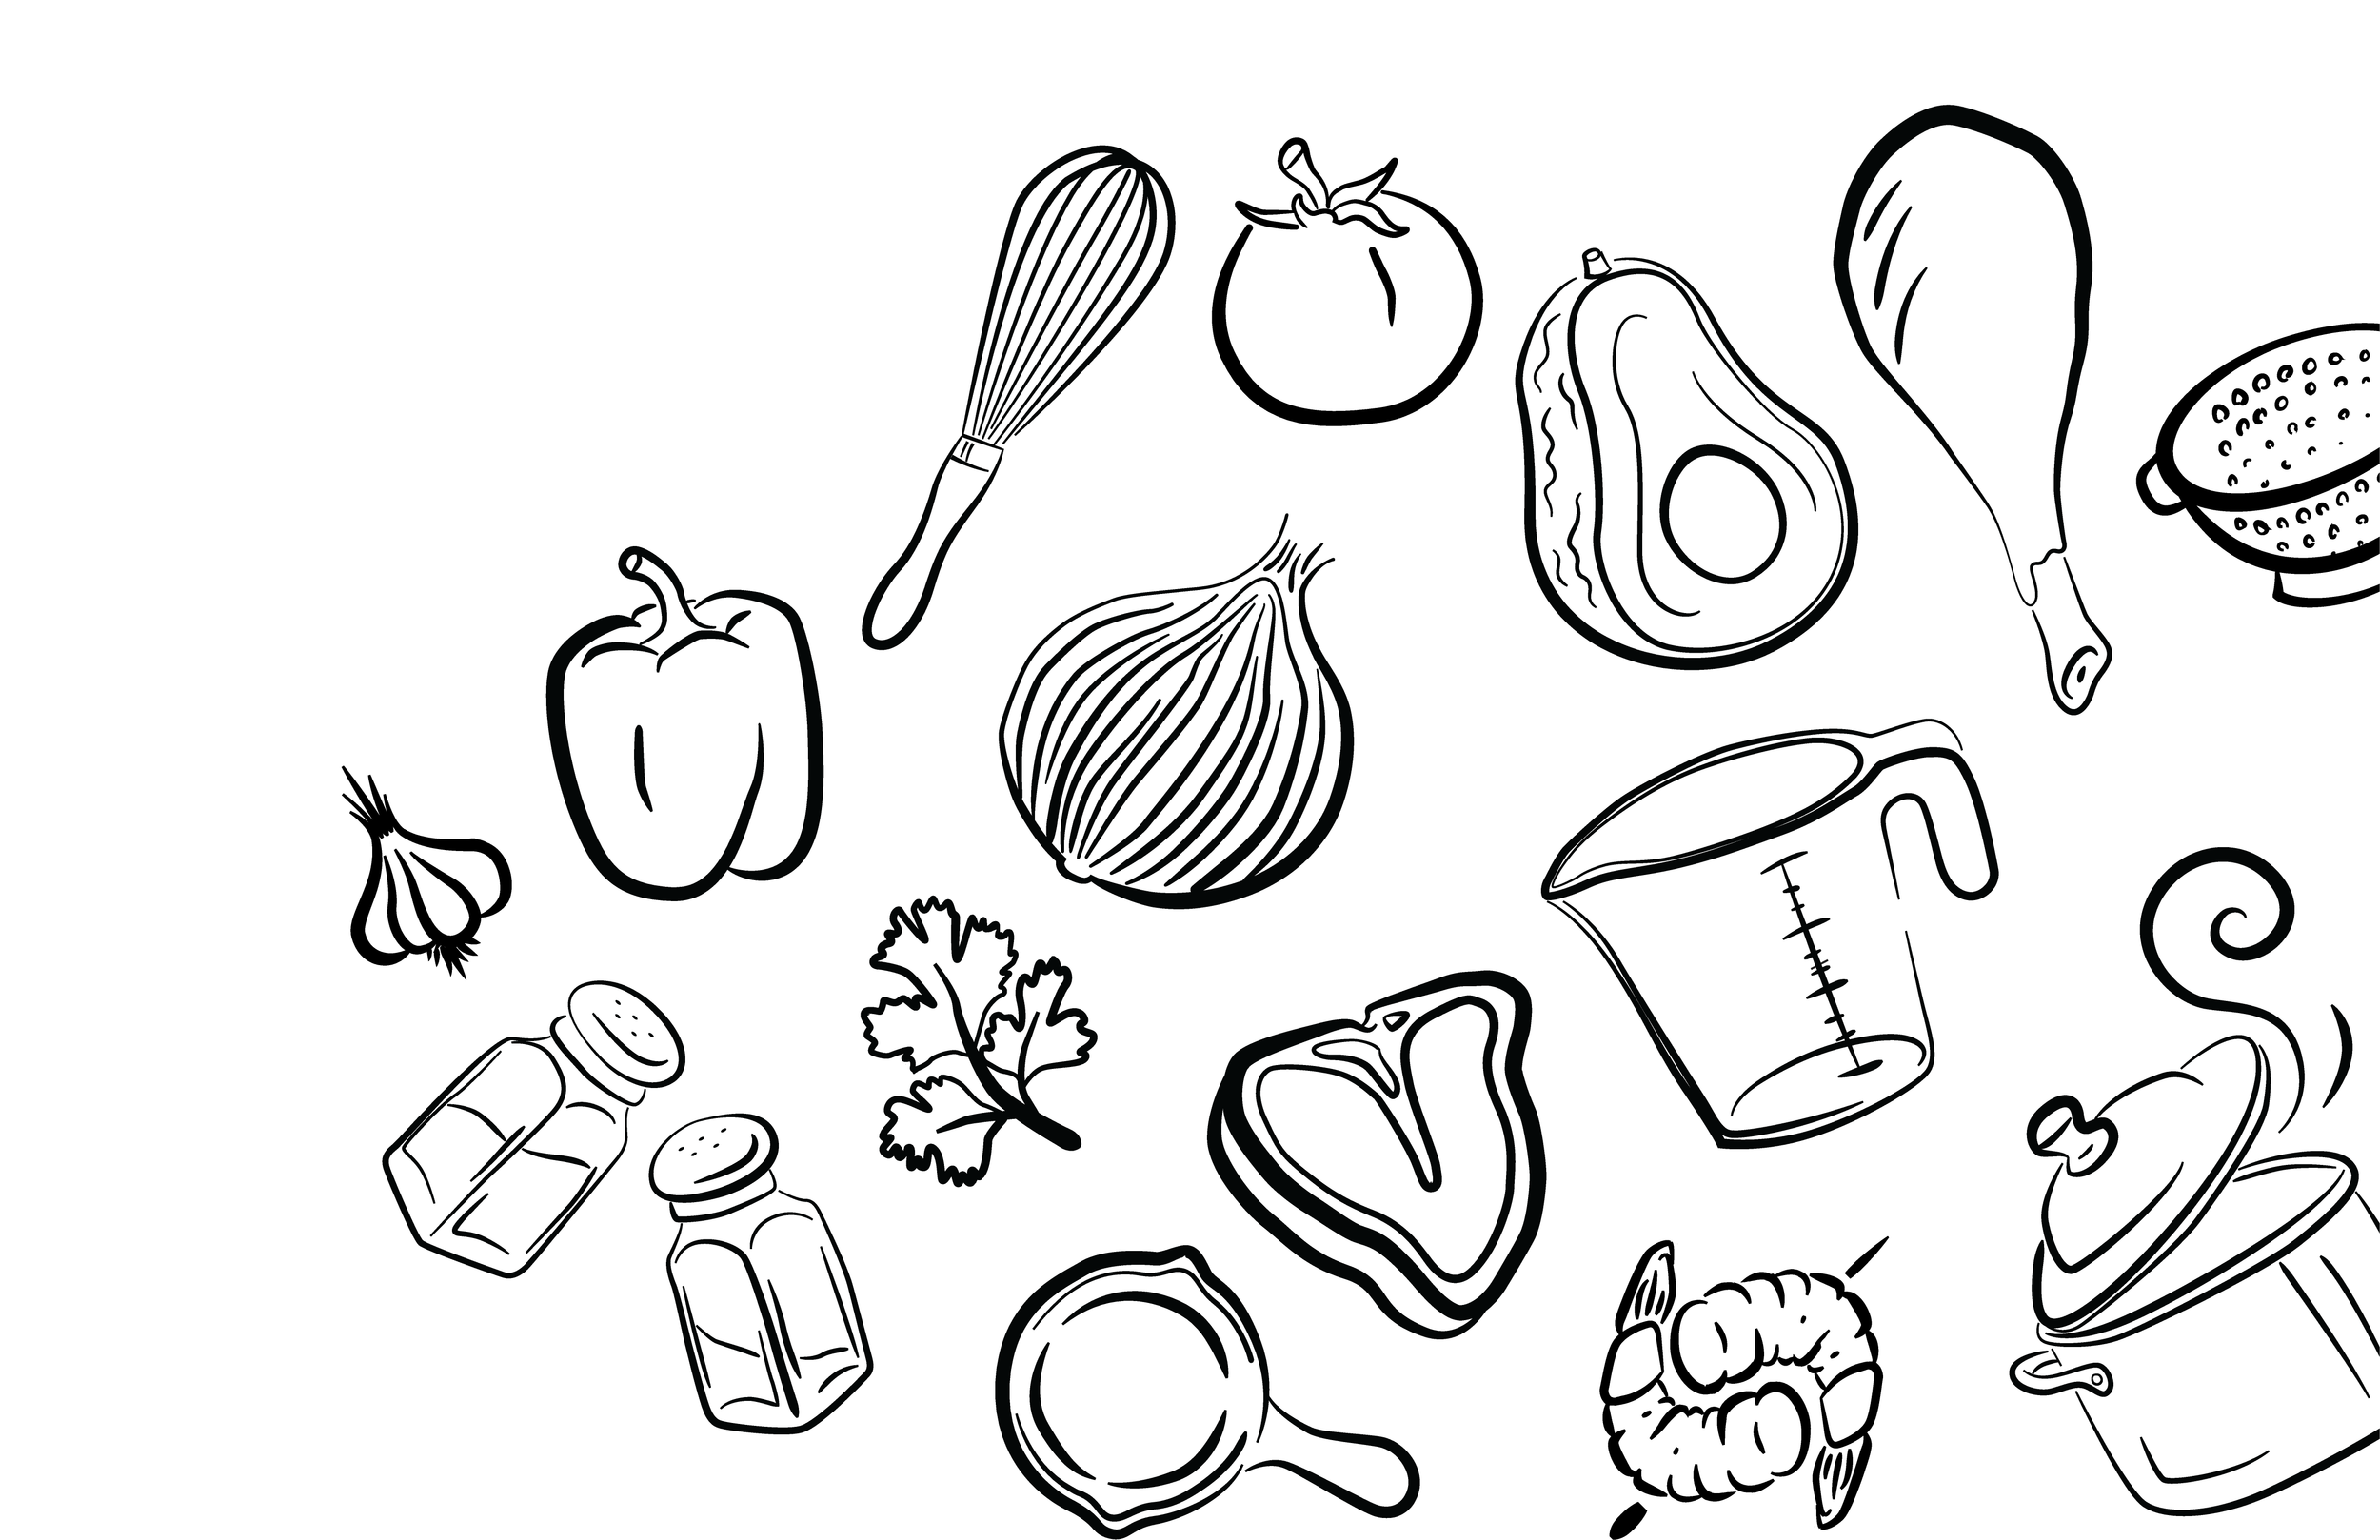 HEB_Icons-06.png